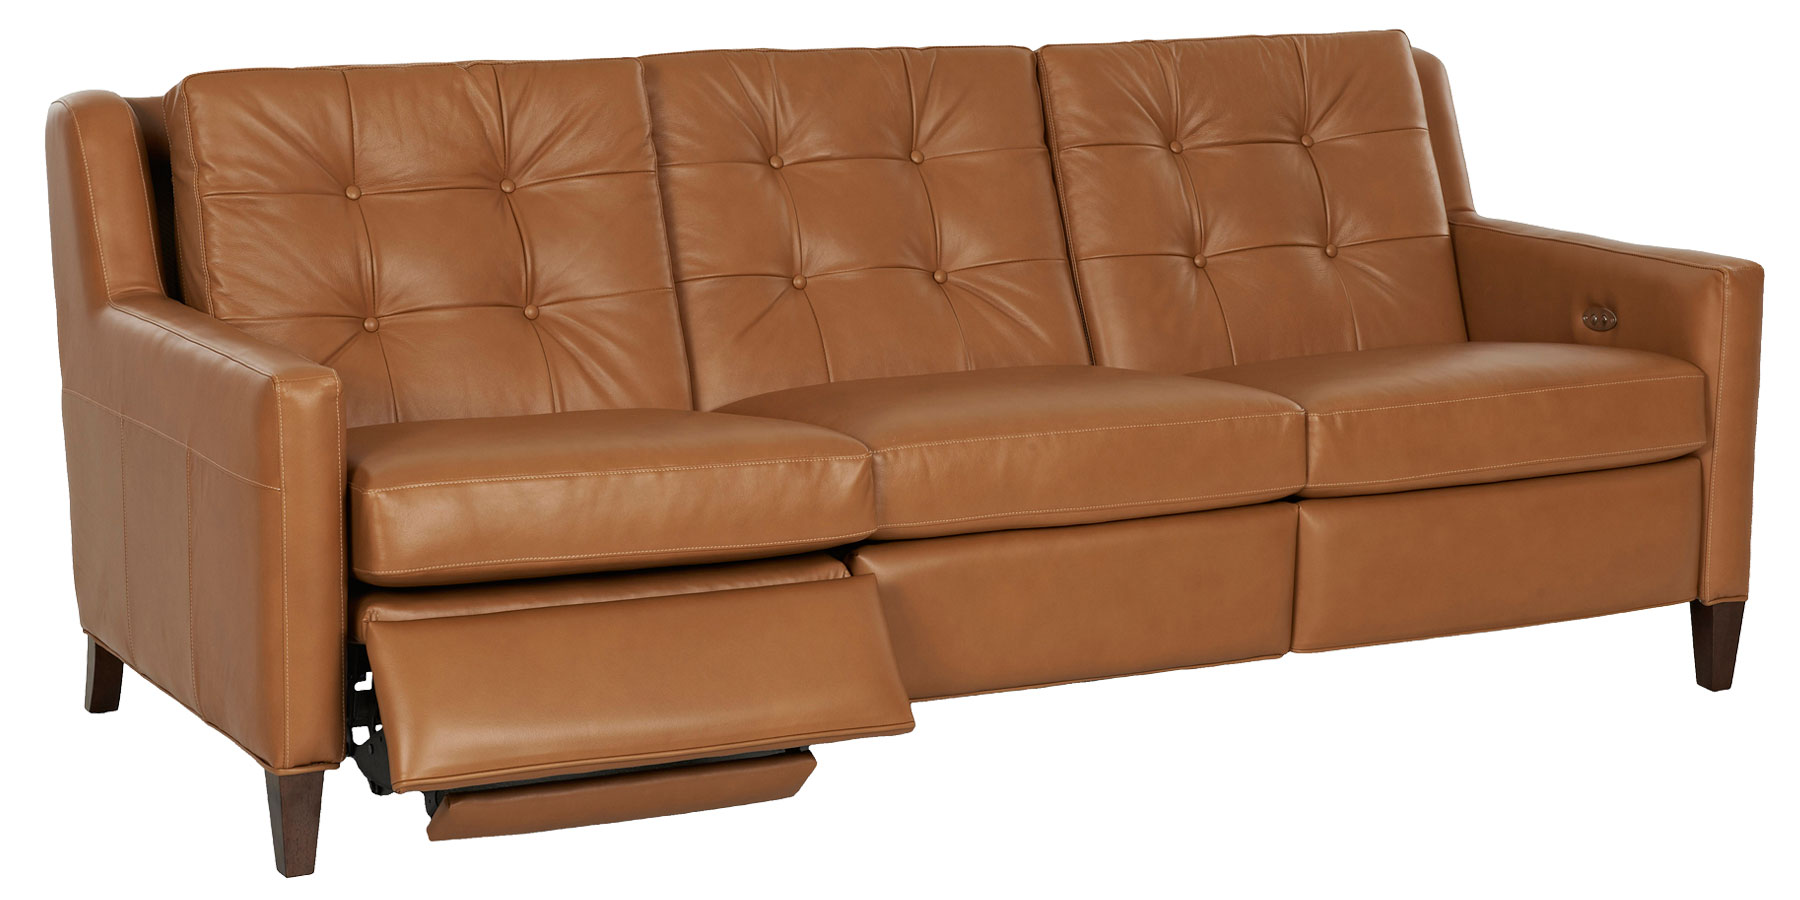 Lowry Mid Century Modern Wall Hugger Reclining Collection Leather Furniture